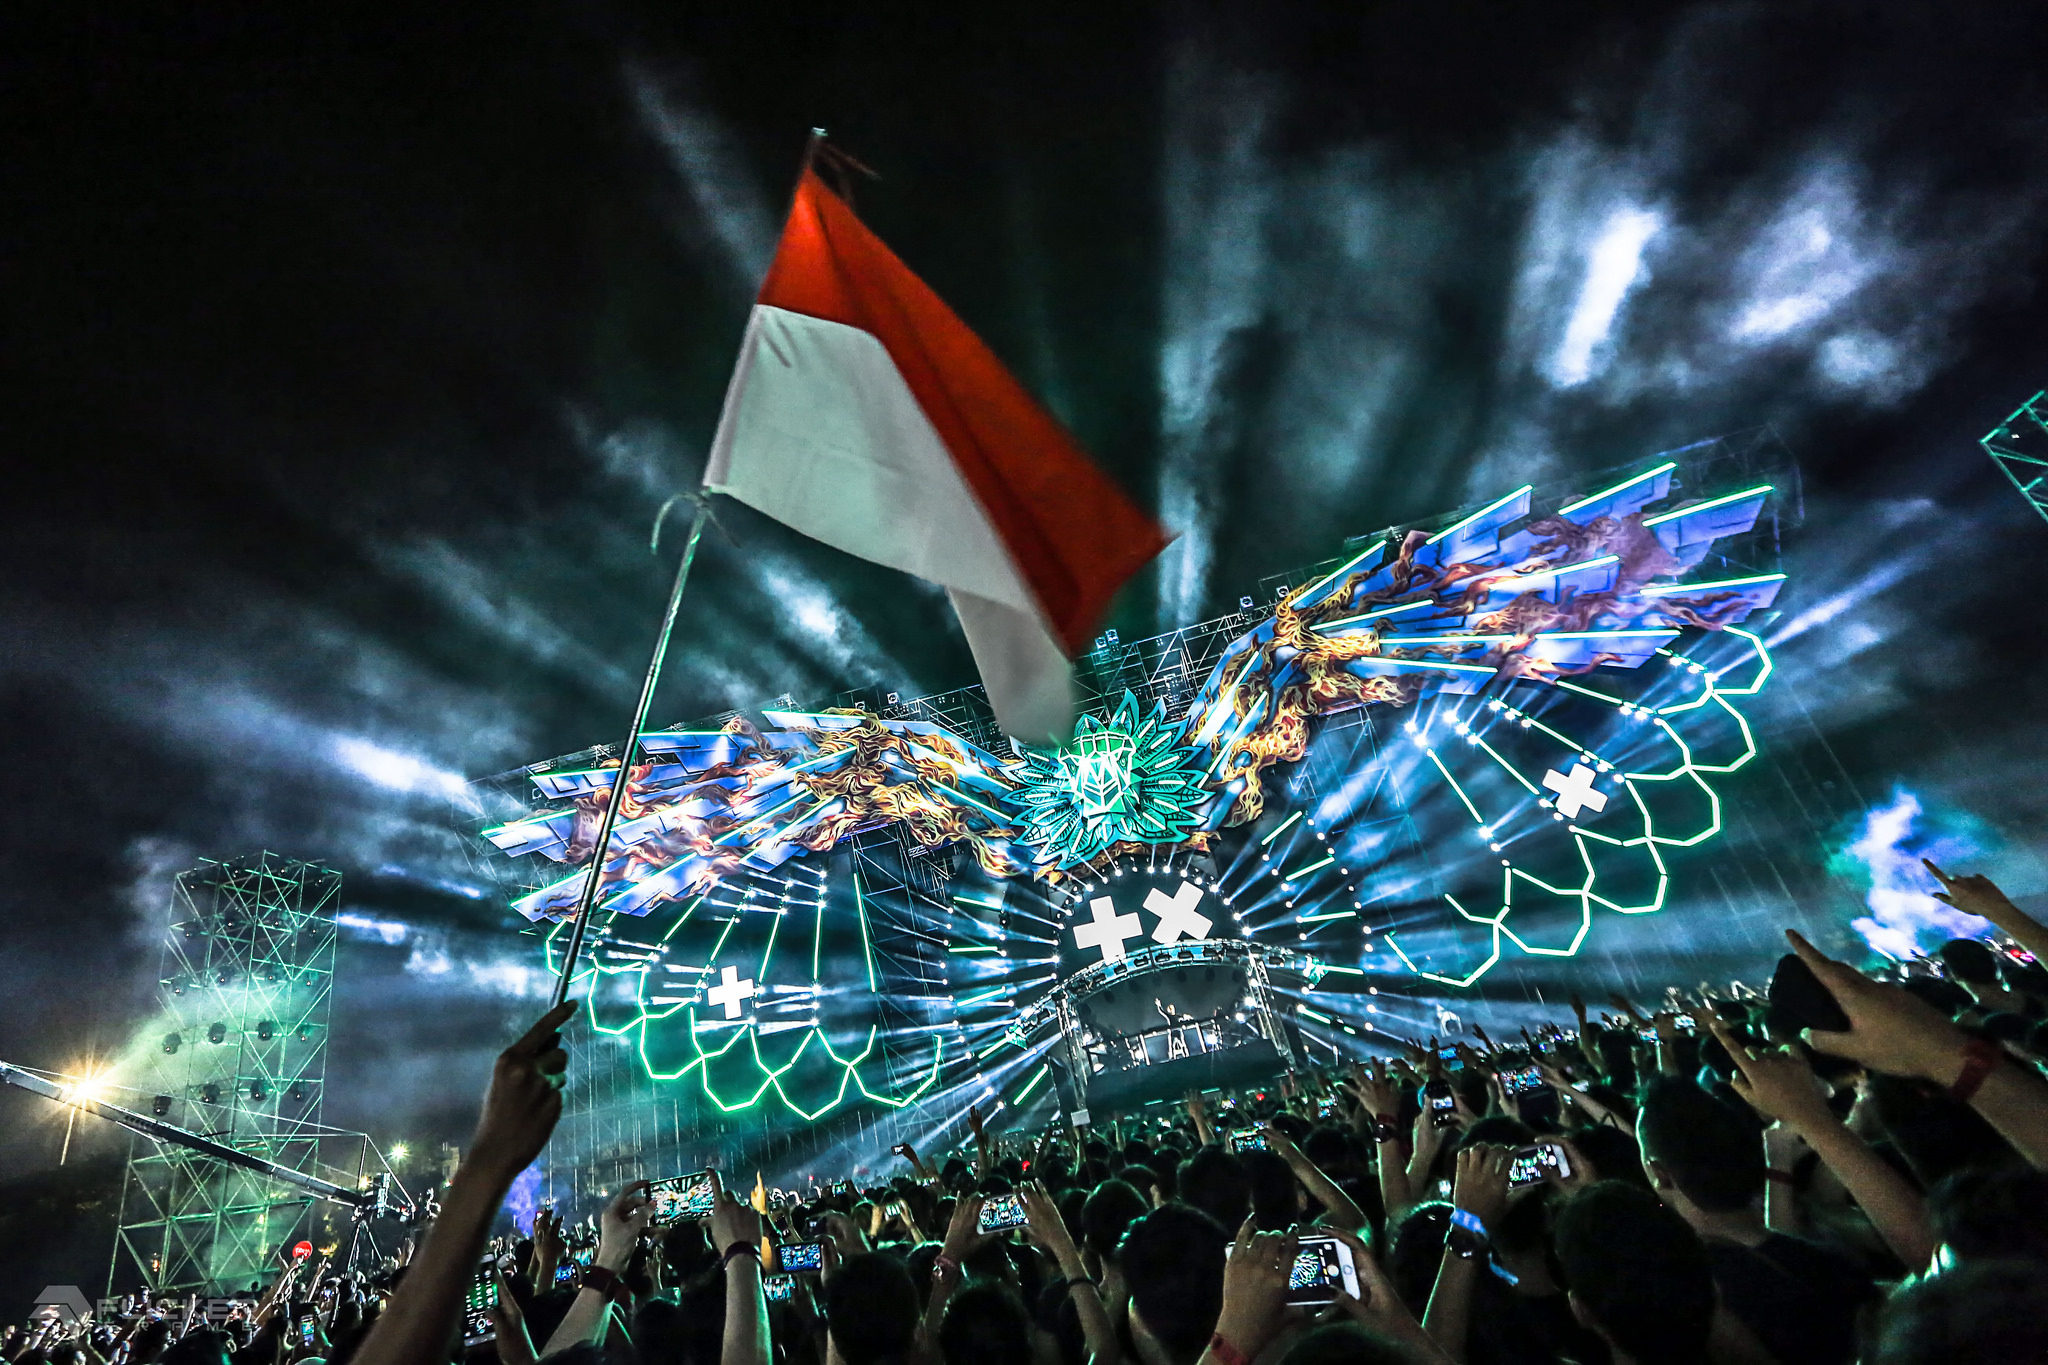 The main stage, Garuda Land.